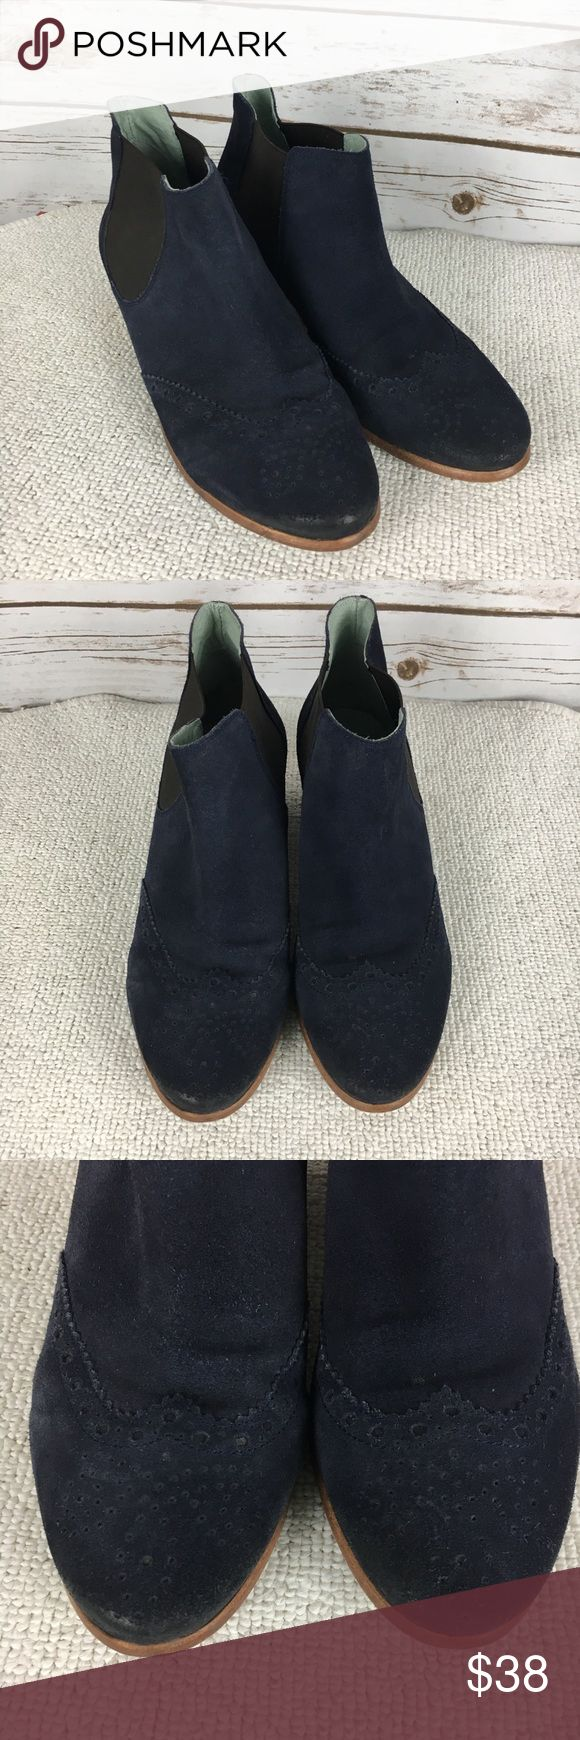 Boden Blue Suede Boots Sz 41 10-10.5 Ankle Booties Womens Boden Blue Suede Boots Sz 41 10-10.5 Ankle Booties Leather Boden Shoes Ankle Boots & Booties